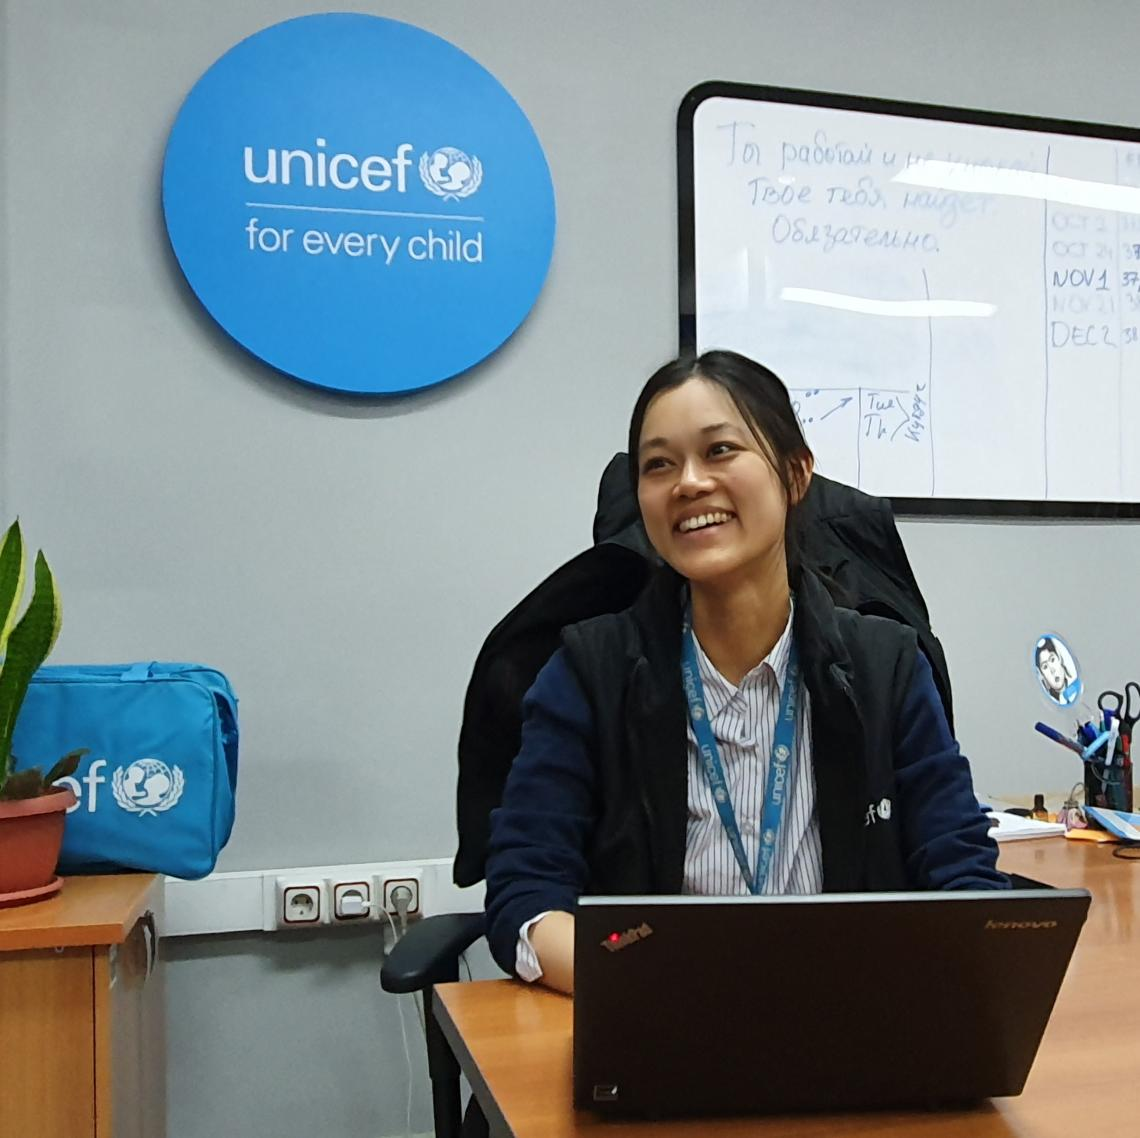 Eri Nakamura, a United Nations Volunteer (UNV) working for UNICEF in Kyrgyzstan